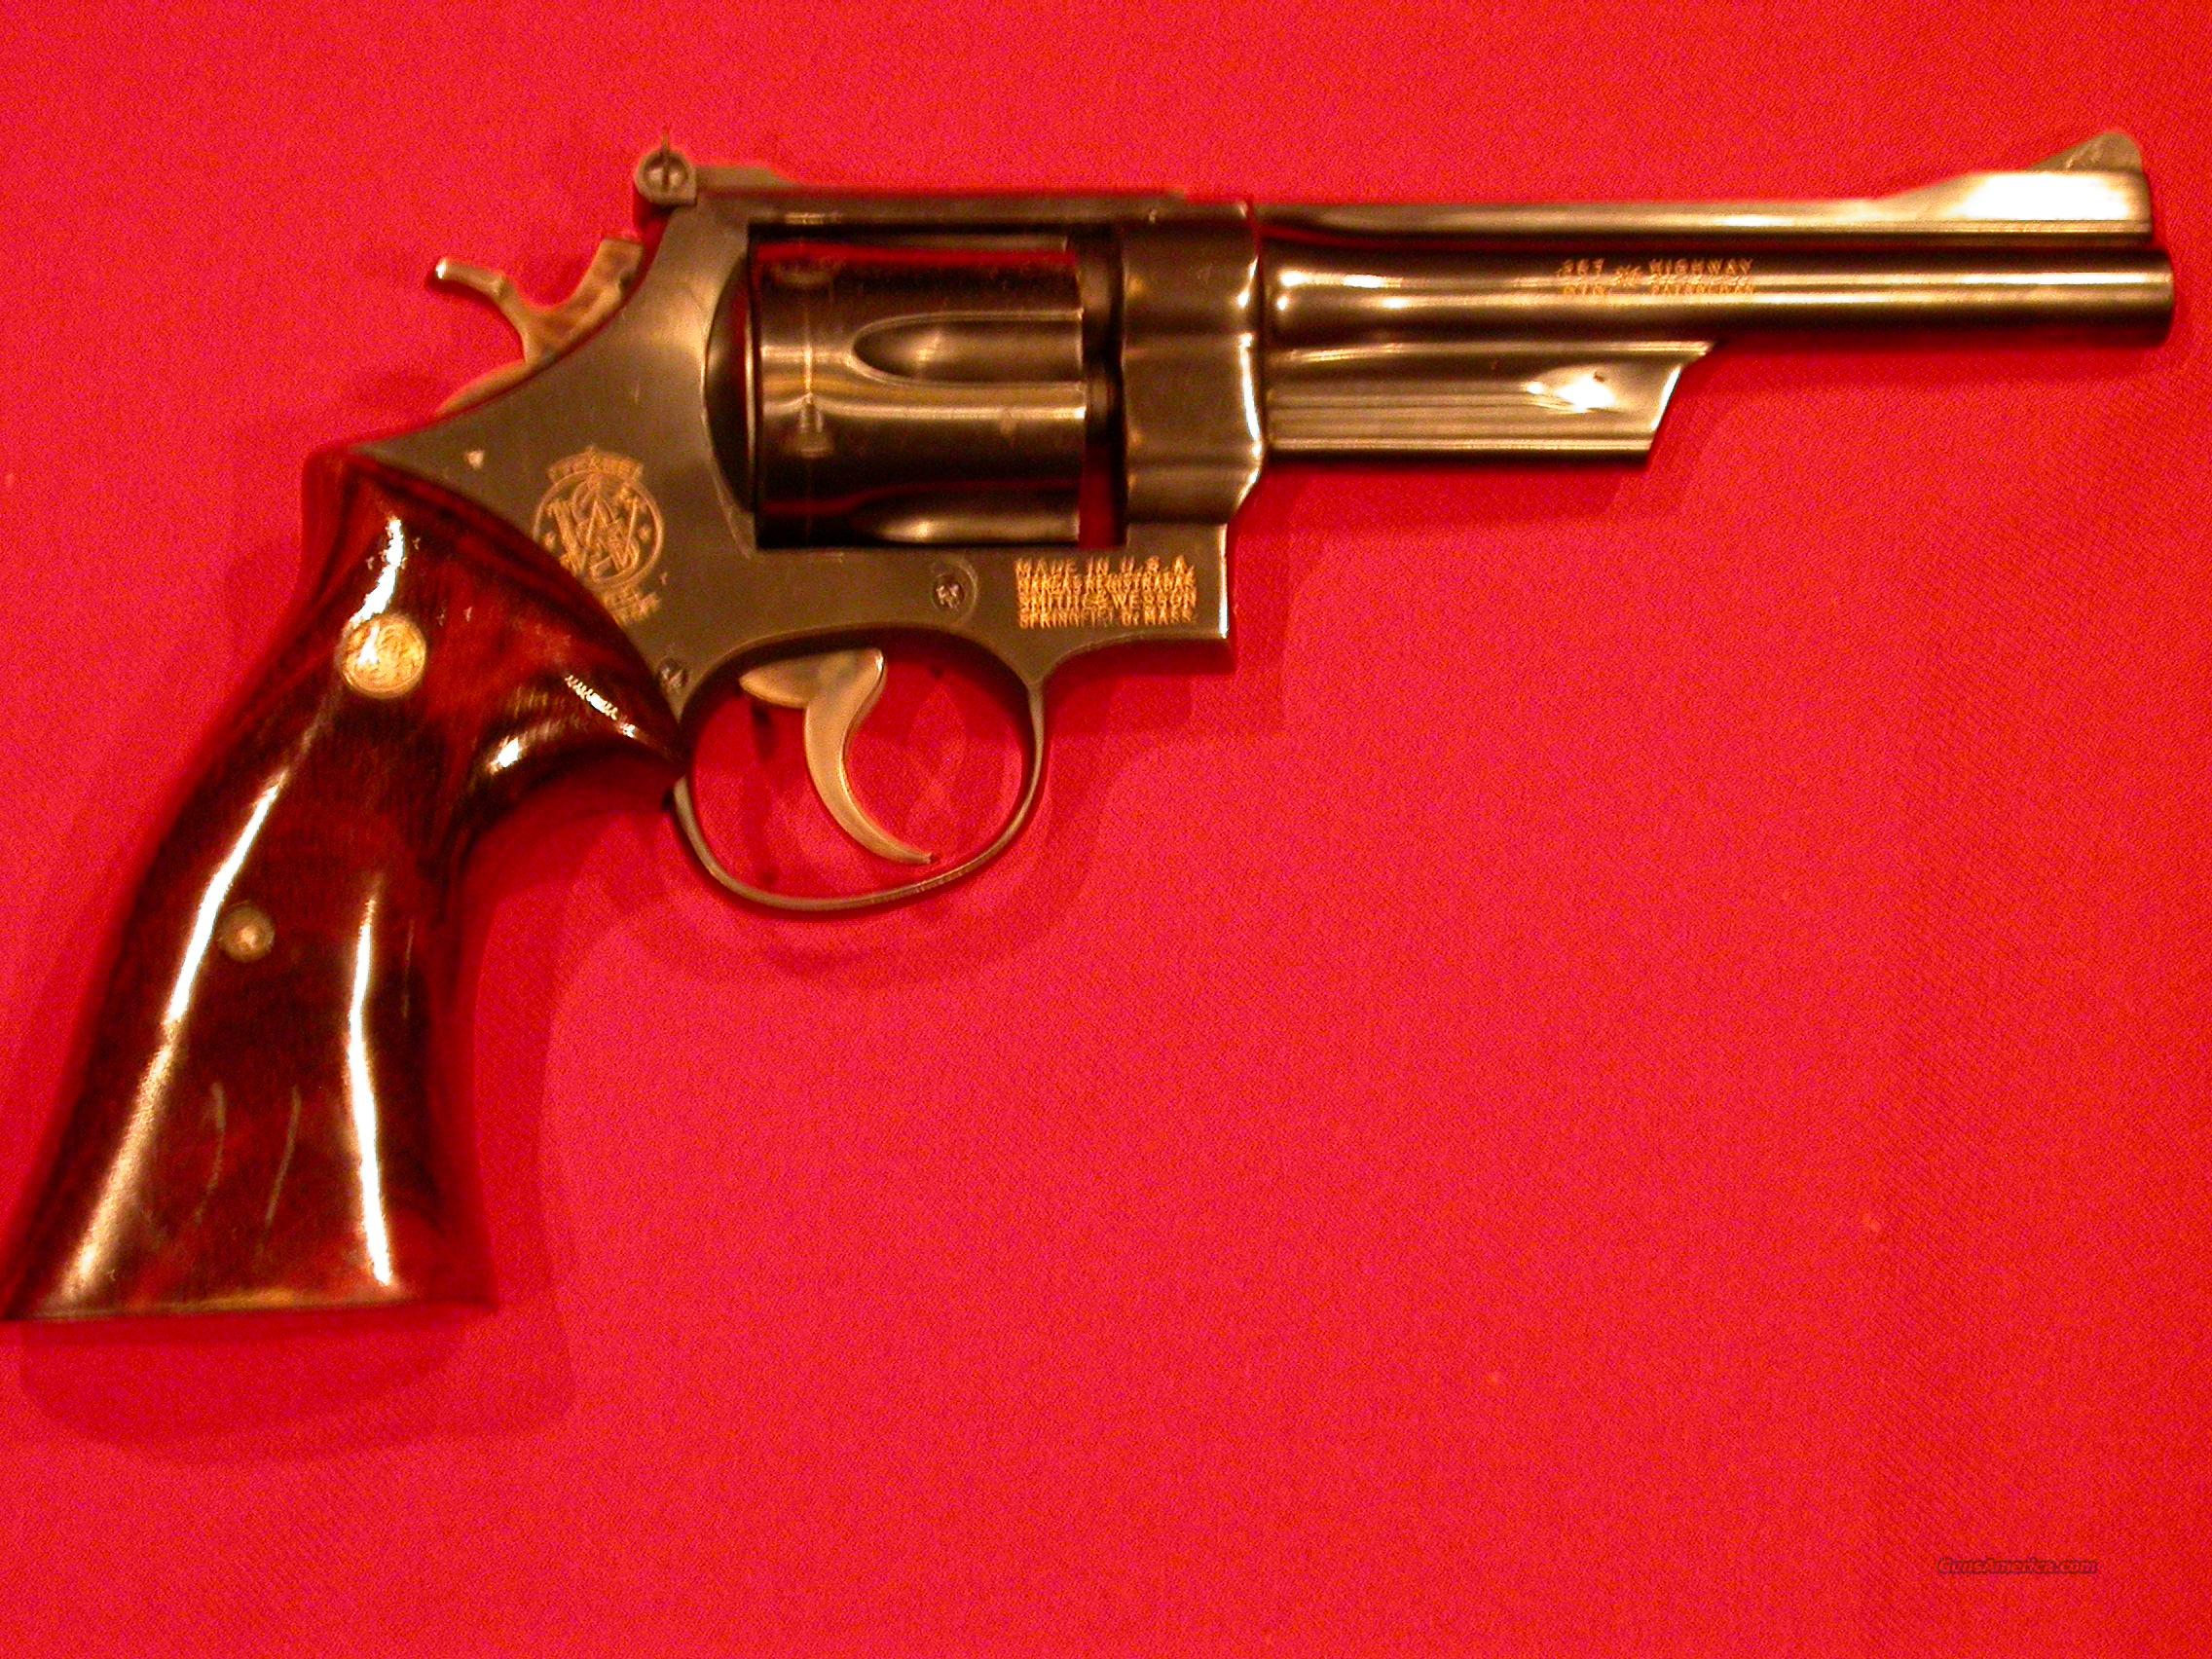 Smith&Wesson Mod. 28-2  Guns > Pistols > Smith & Wesson Revolvers > Full Frame Revolver